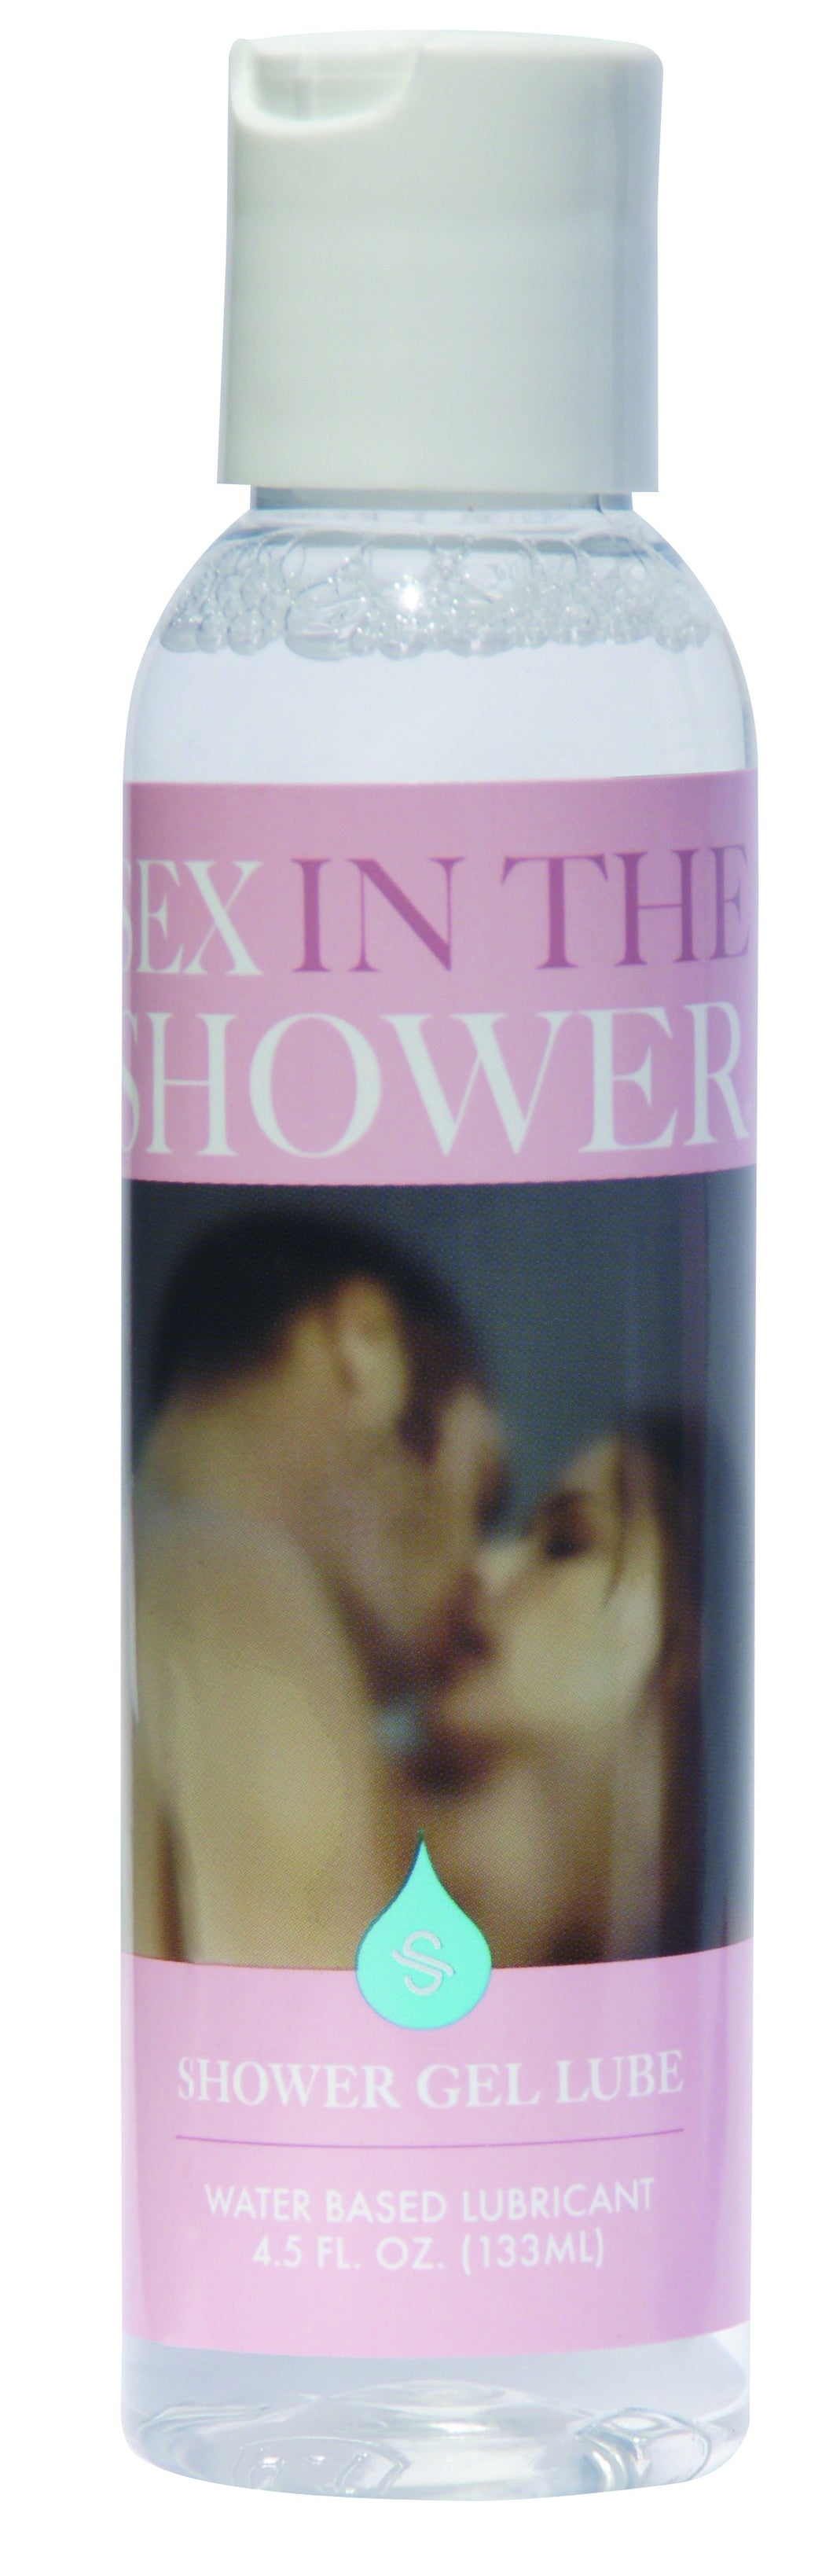 Shower Gel Lube (4.5oz) - NEW Sex In The Shower - available NOW